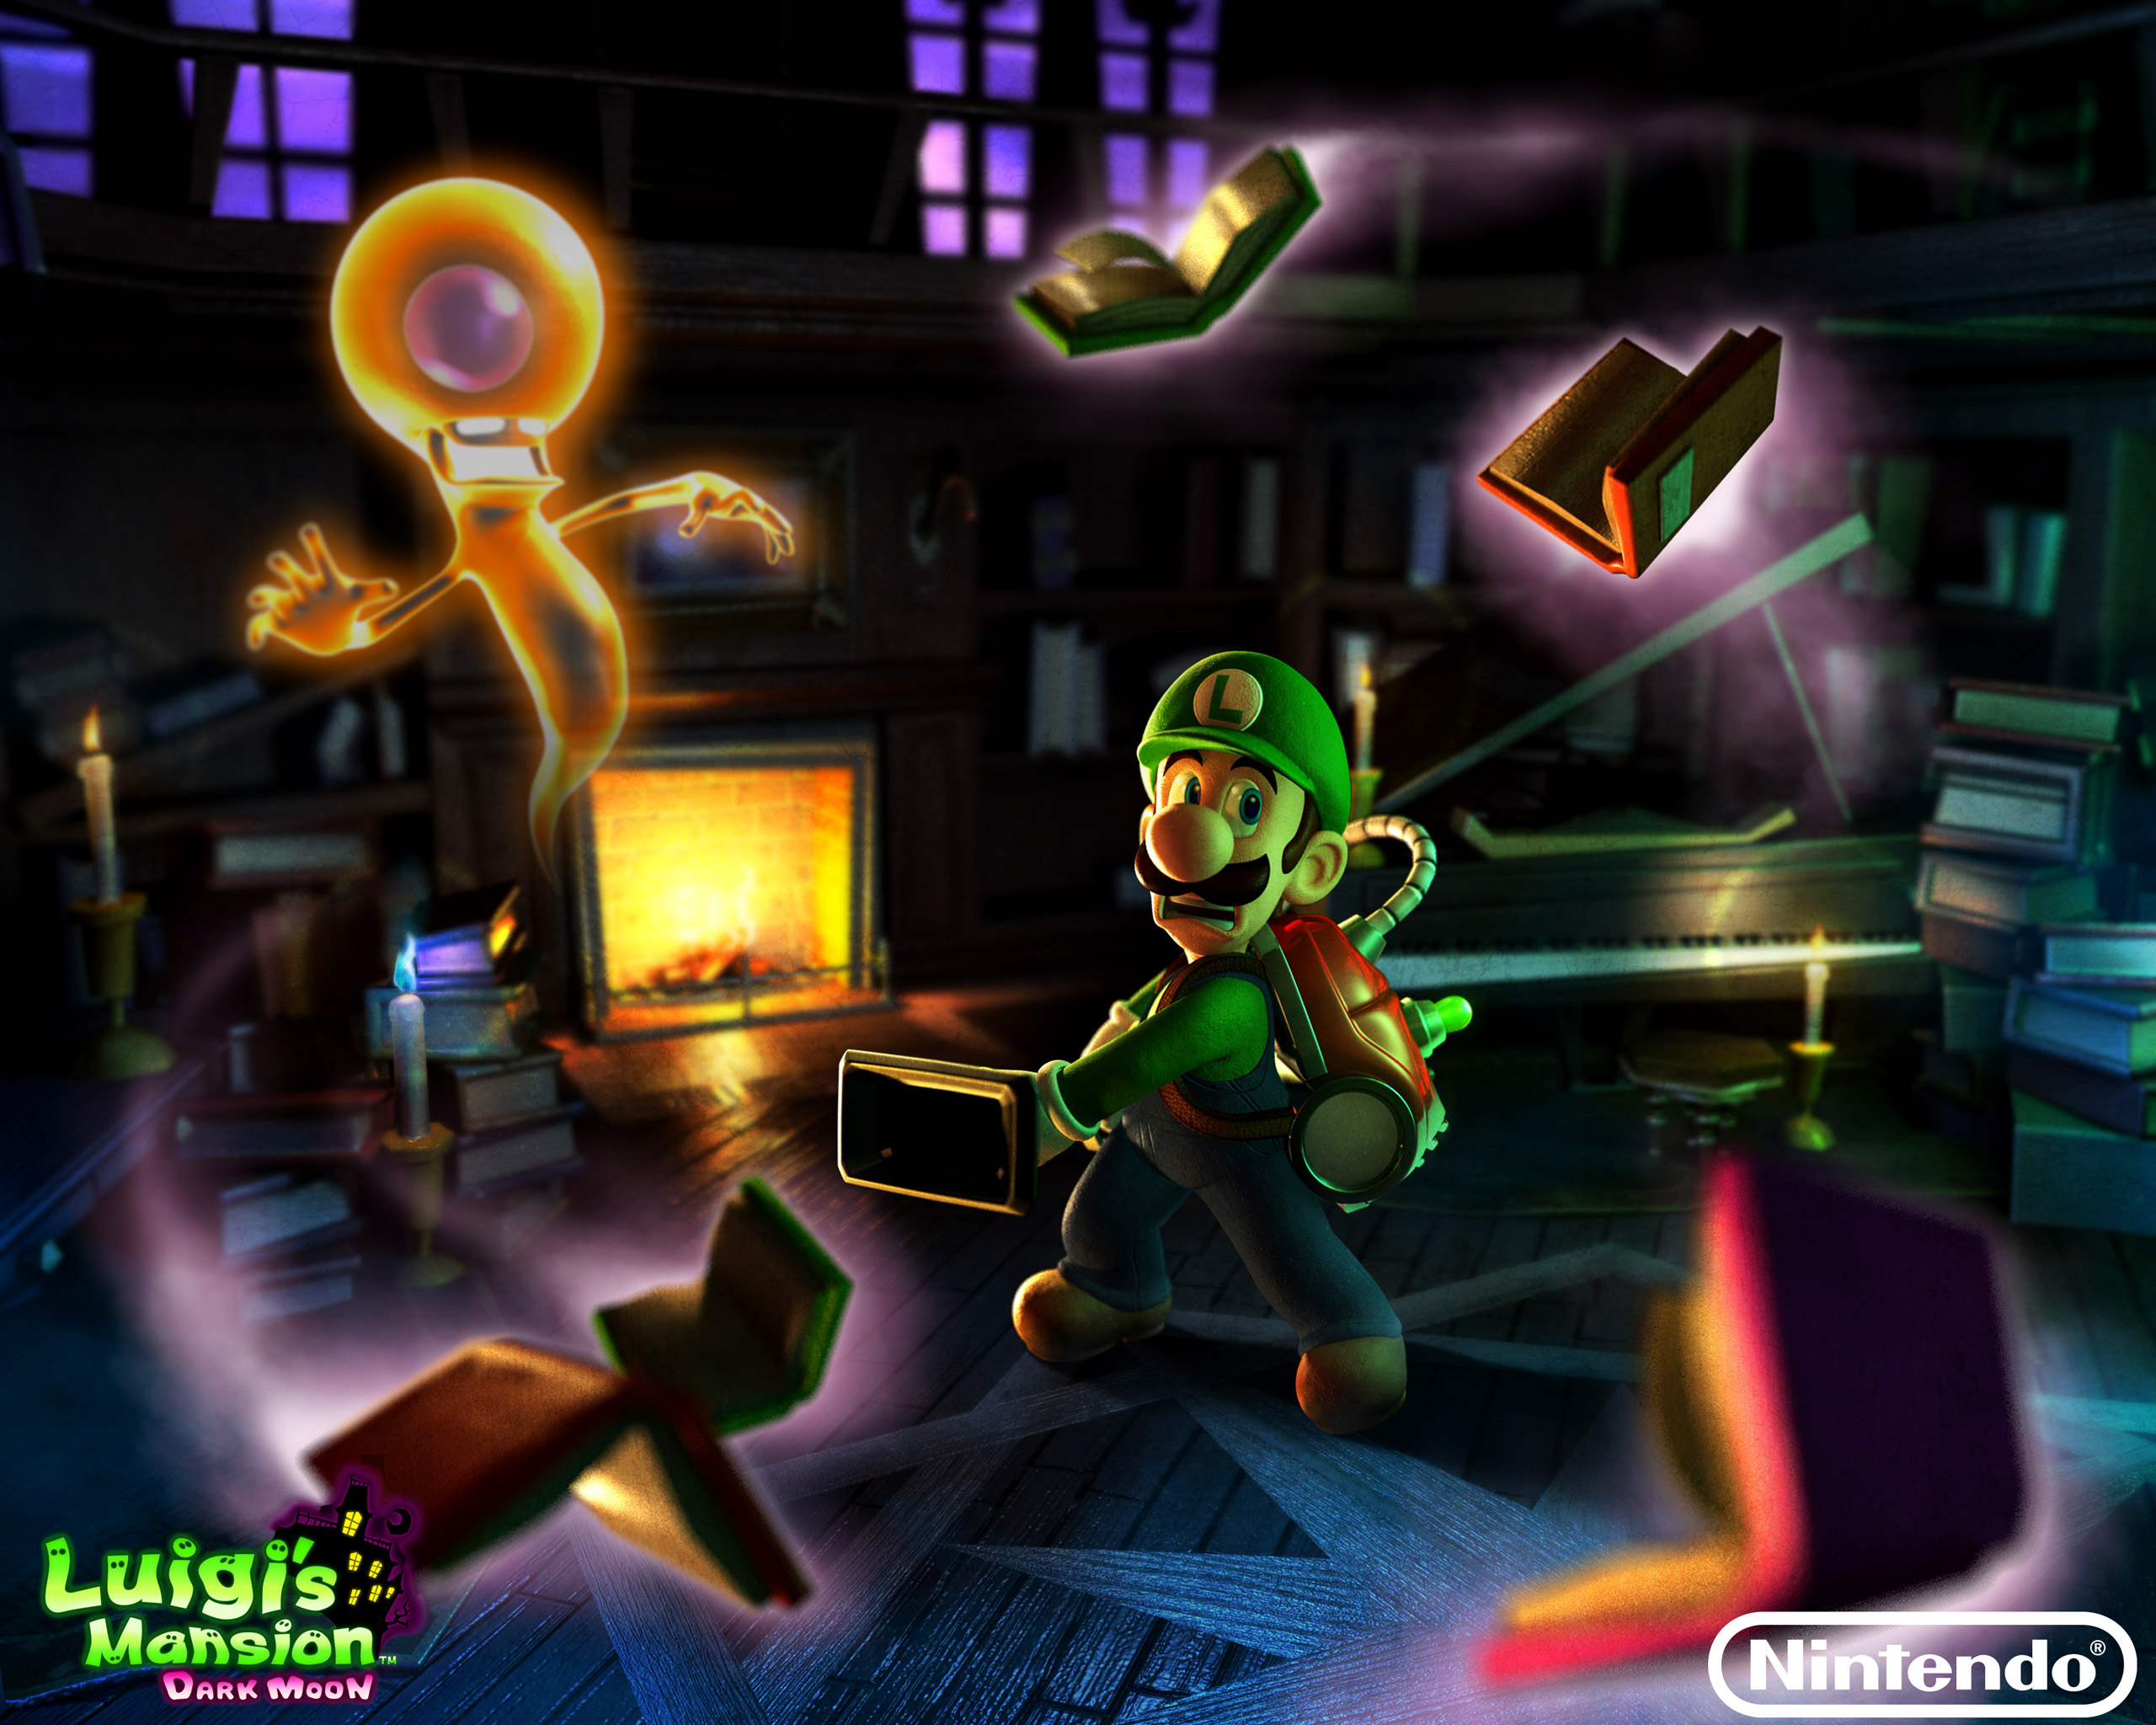 Games Wallpapers Luigis Mansion Dark Moon 2560x2048 Wallpaper